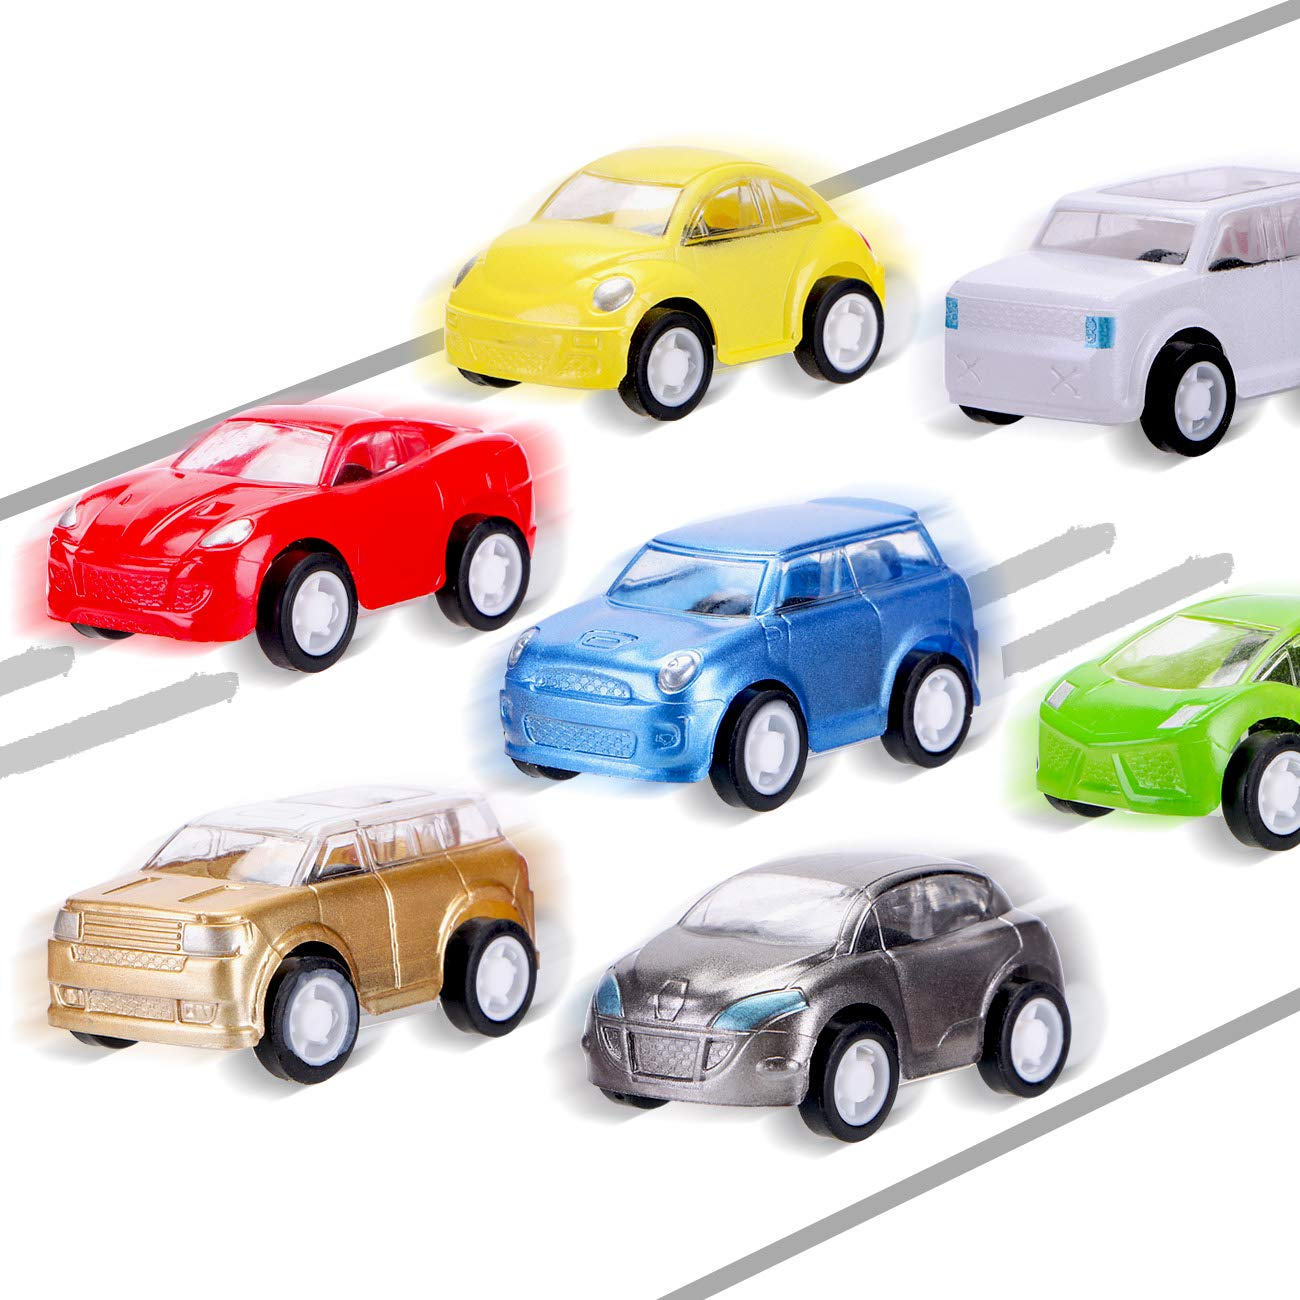 12 Pcs Filled Easter Eggs with Toy Cars,3.15''-Easter Pary Favor-Plastic Prefilled Eggs with Mini Pull Back Vehicles Toys for Toddlers by Sizonjoy (Image #3)